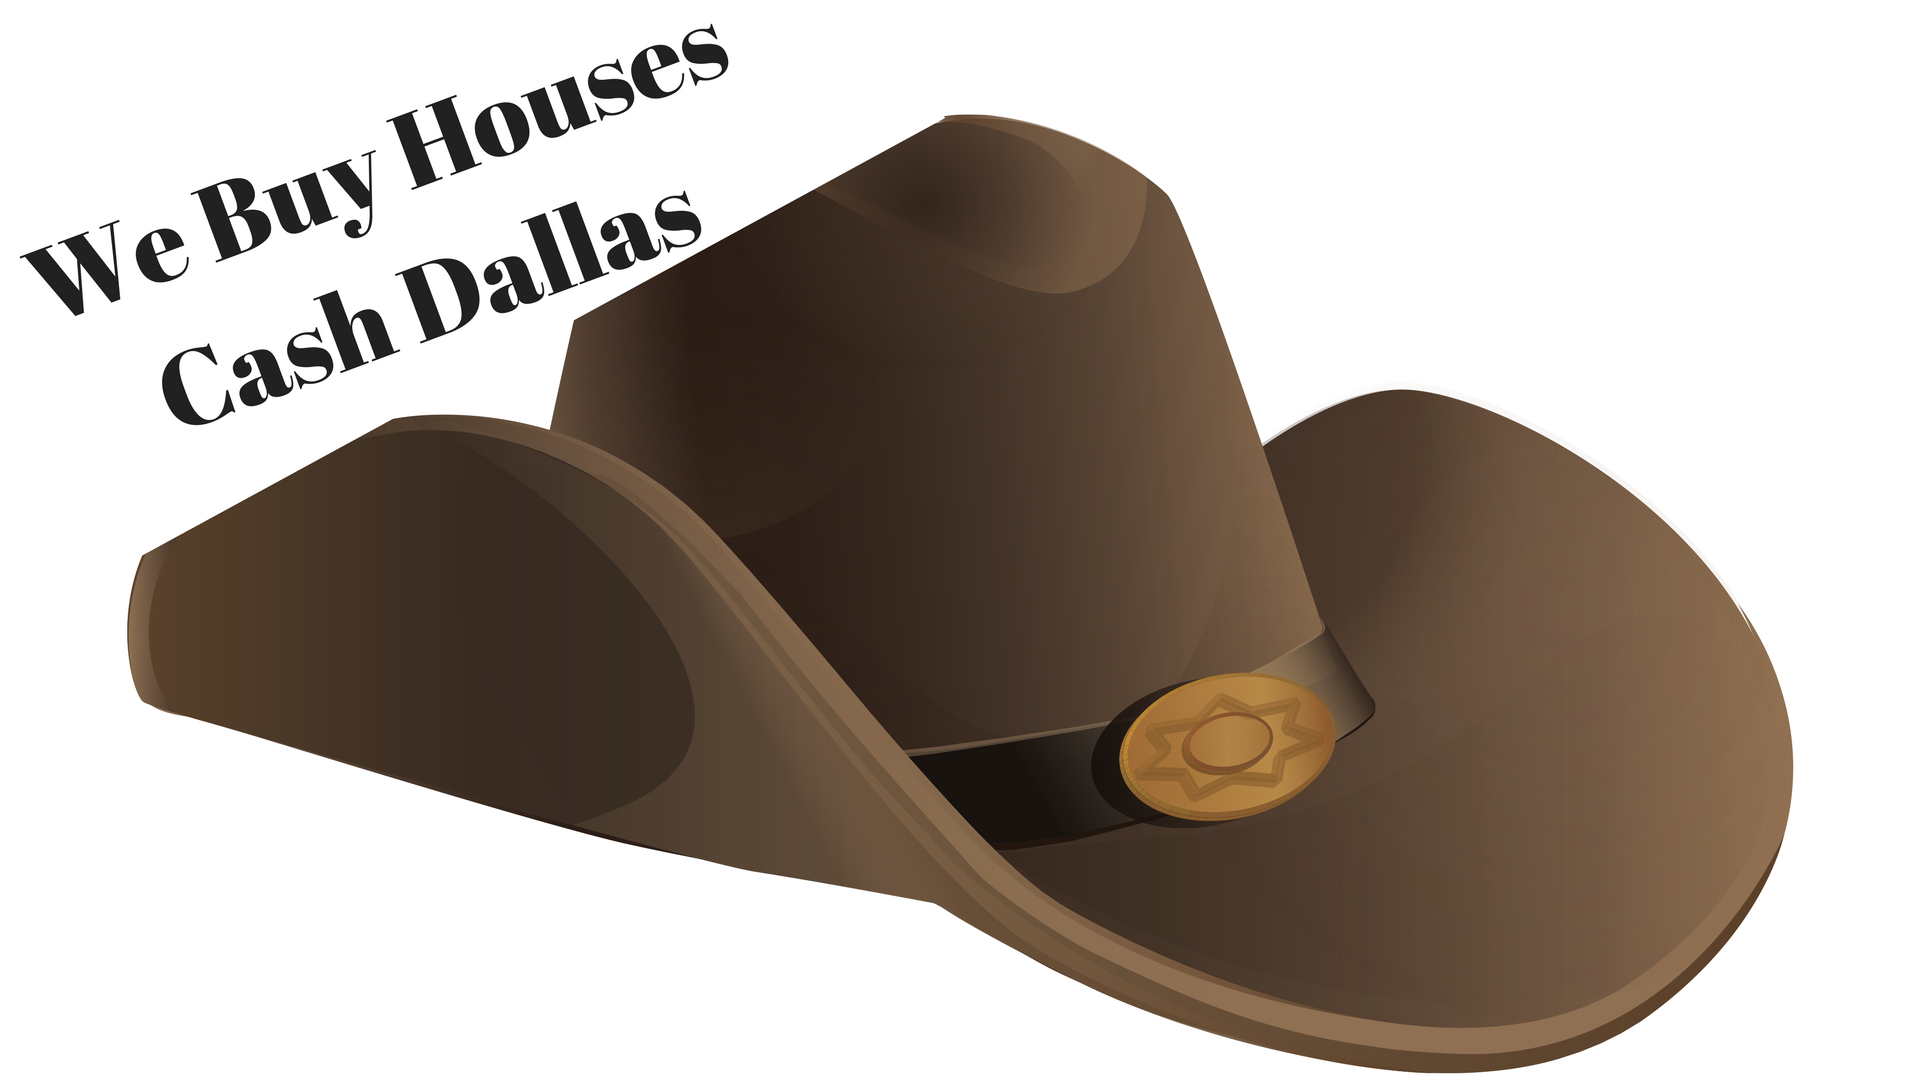 We Buy Houses Cash Dallas - Way To Avoid Showings But No Offers